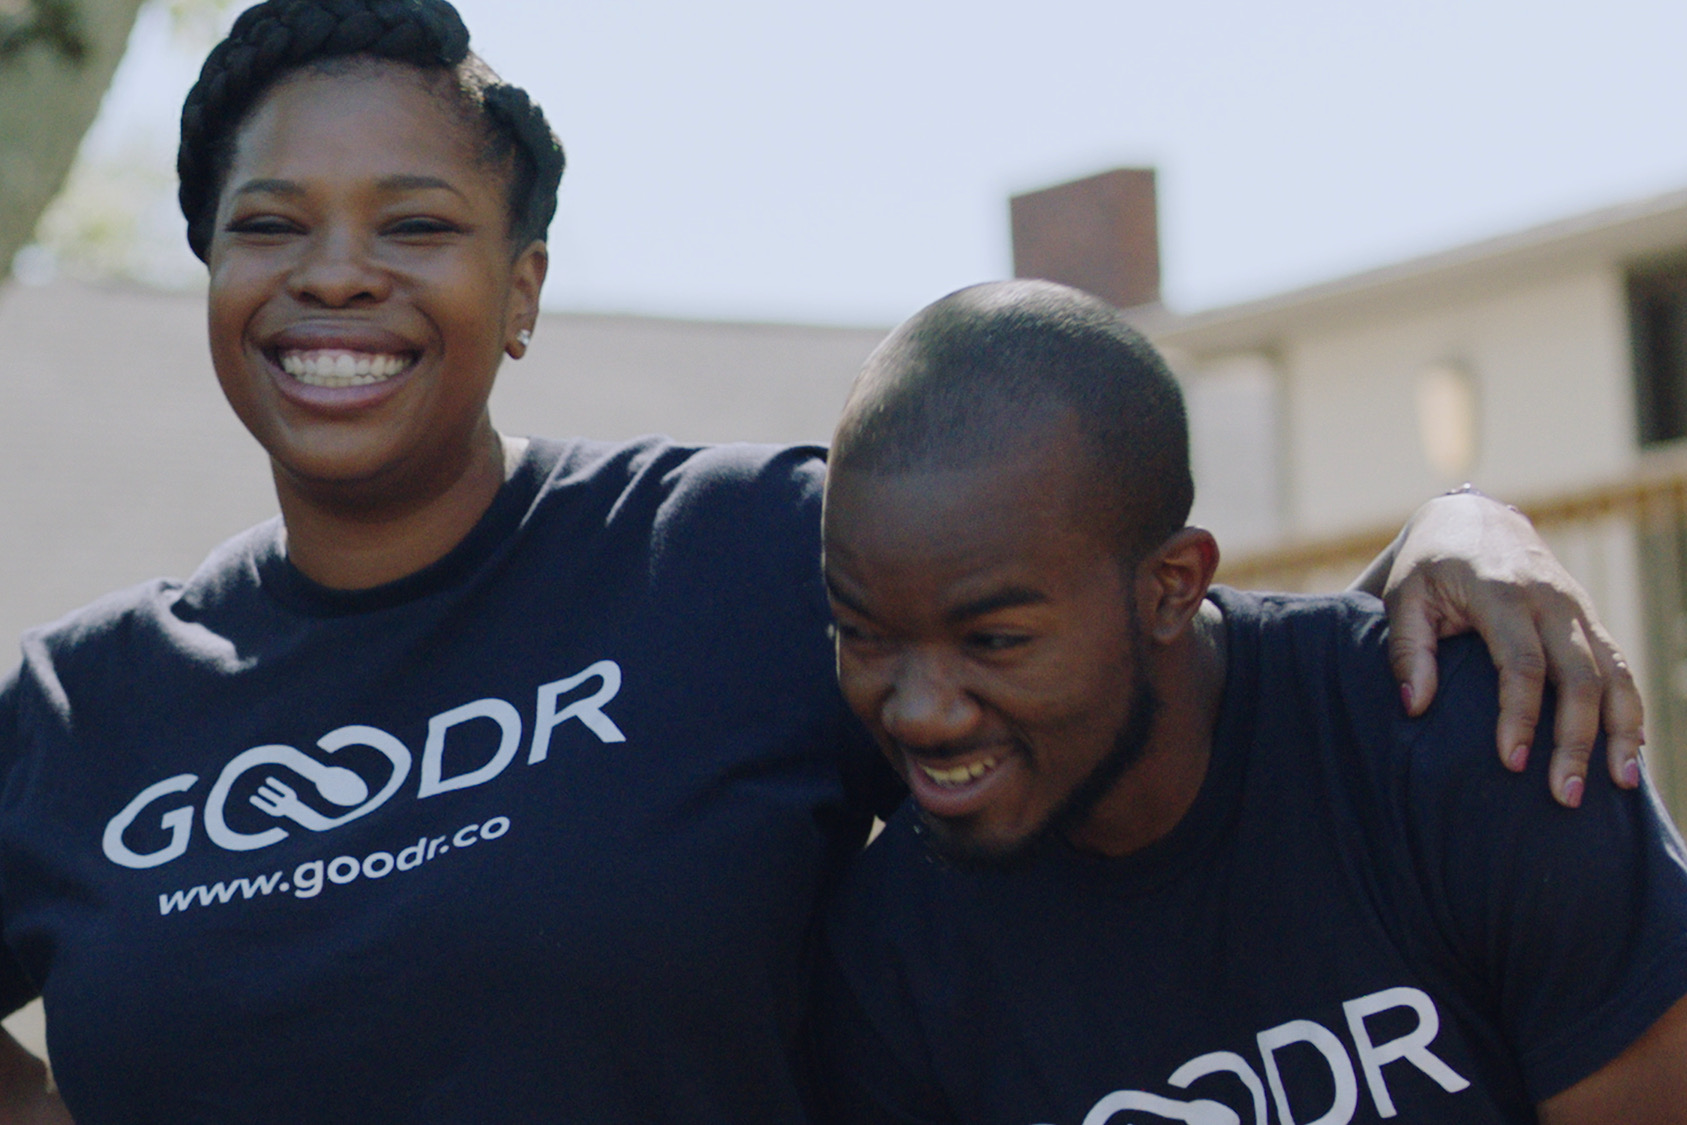 a woman and a man from Goodr smiling